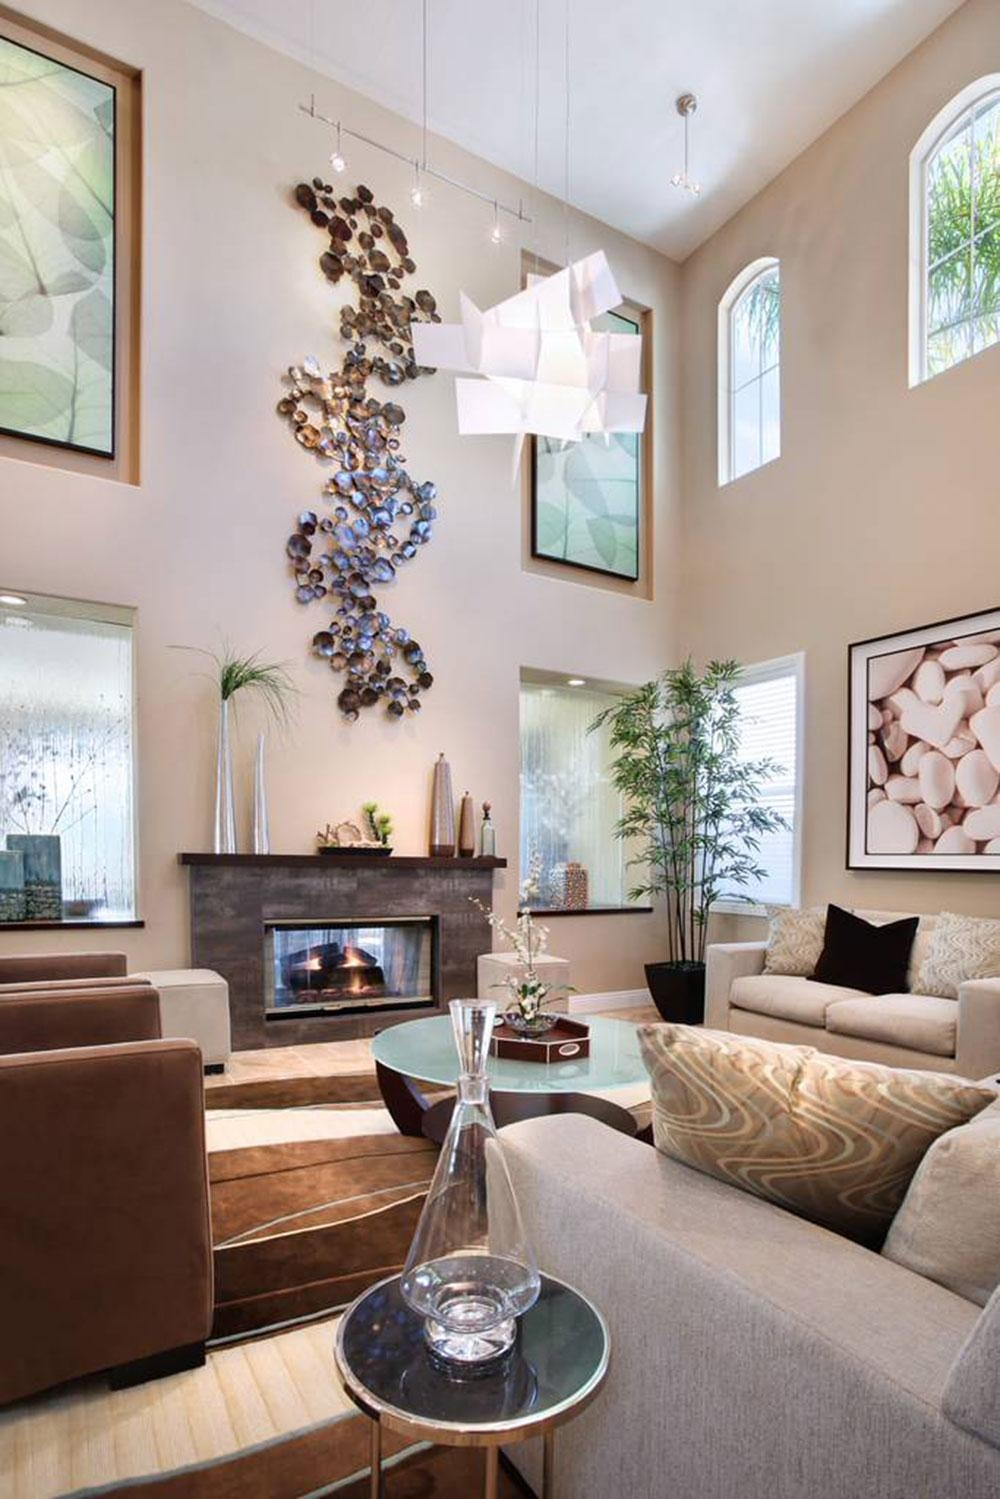 High Ceiling Rooms And Decorating Ideas For Them inside Tall Wall Art Decor